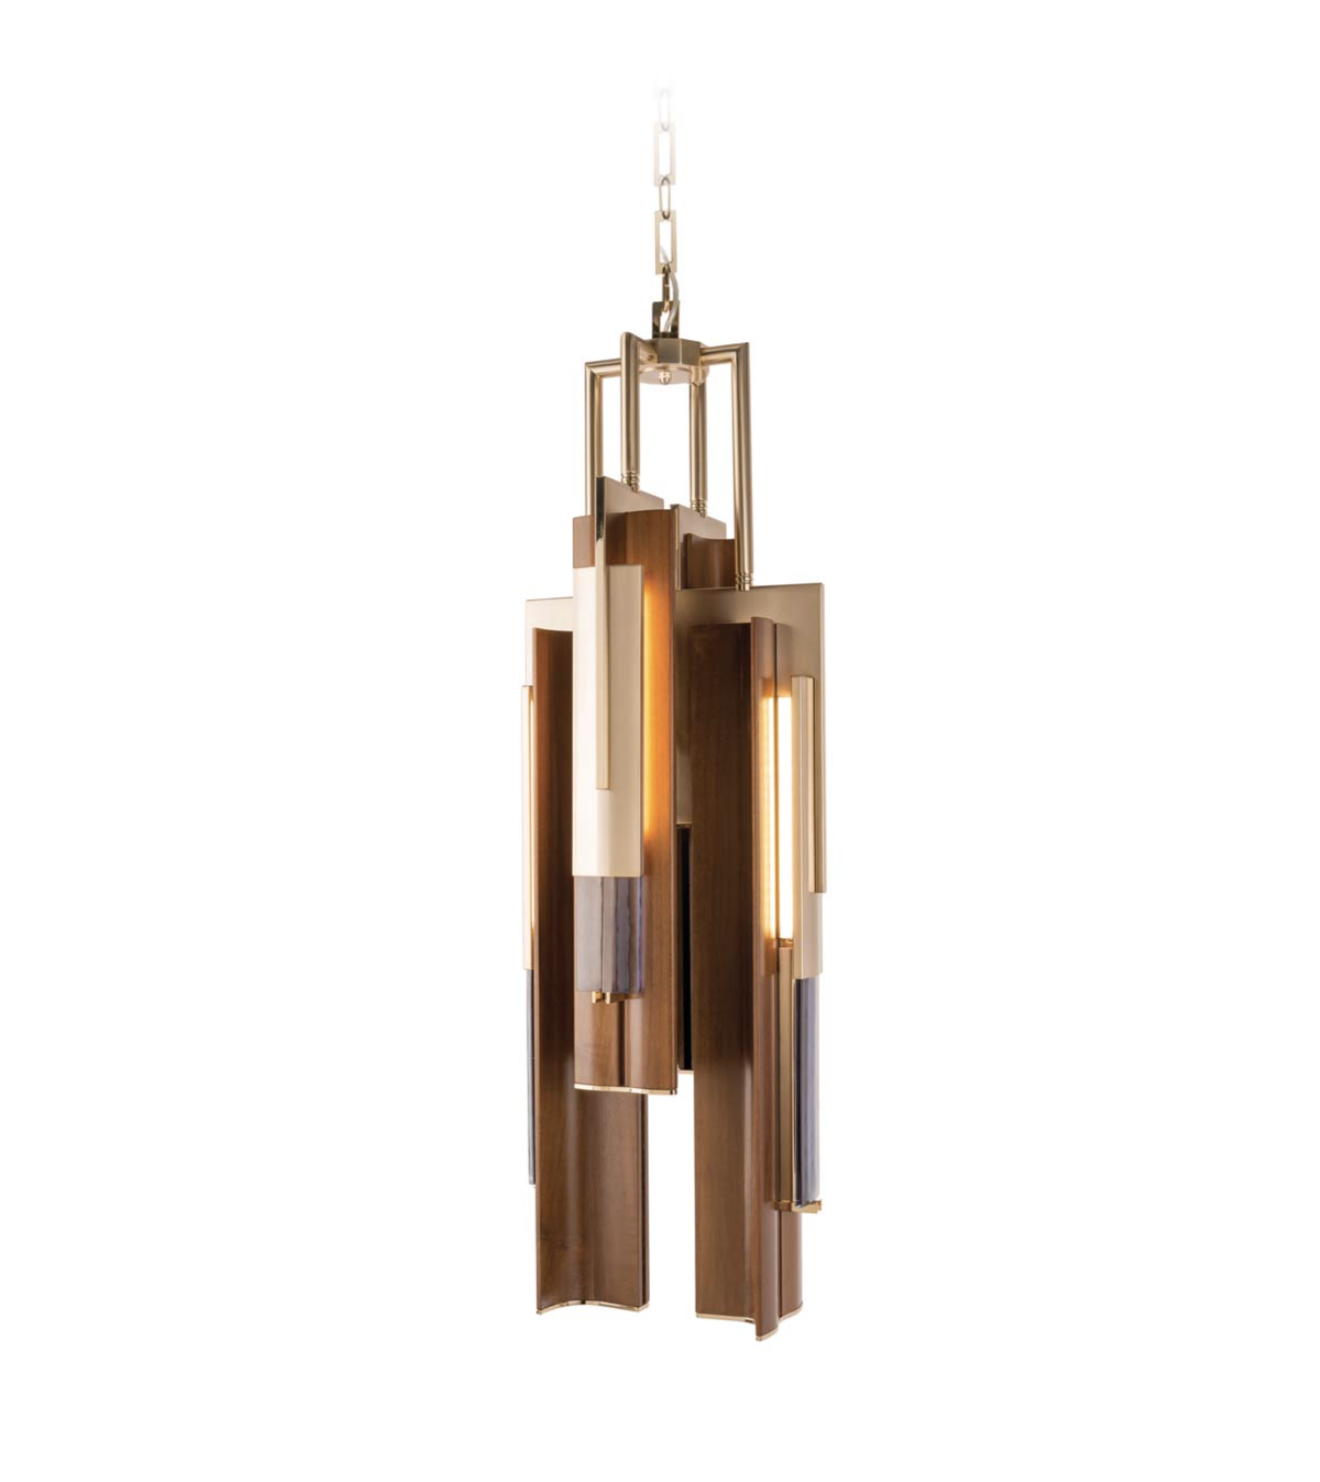 Officina Luce Anima pendant in walnut wood and light gold finish via Masha Shapiro Agency UK.jpg